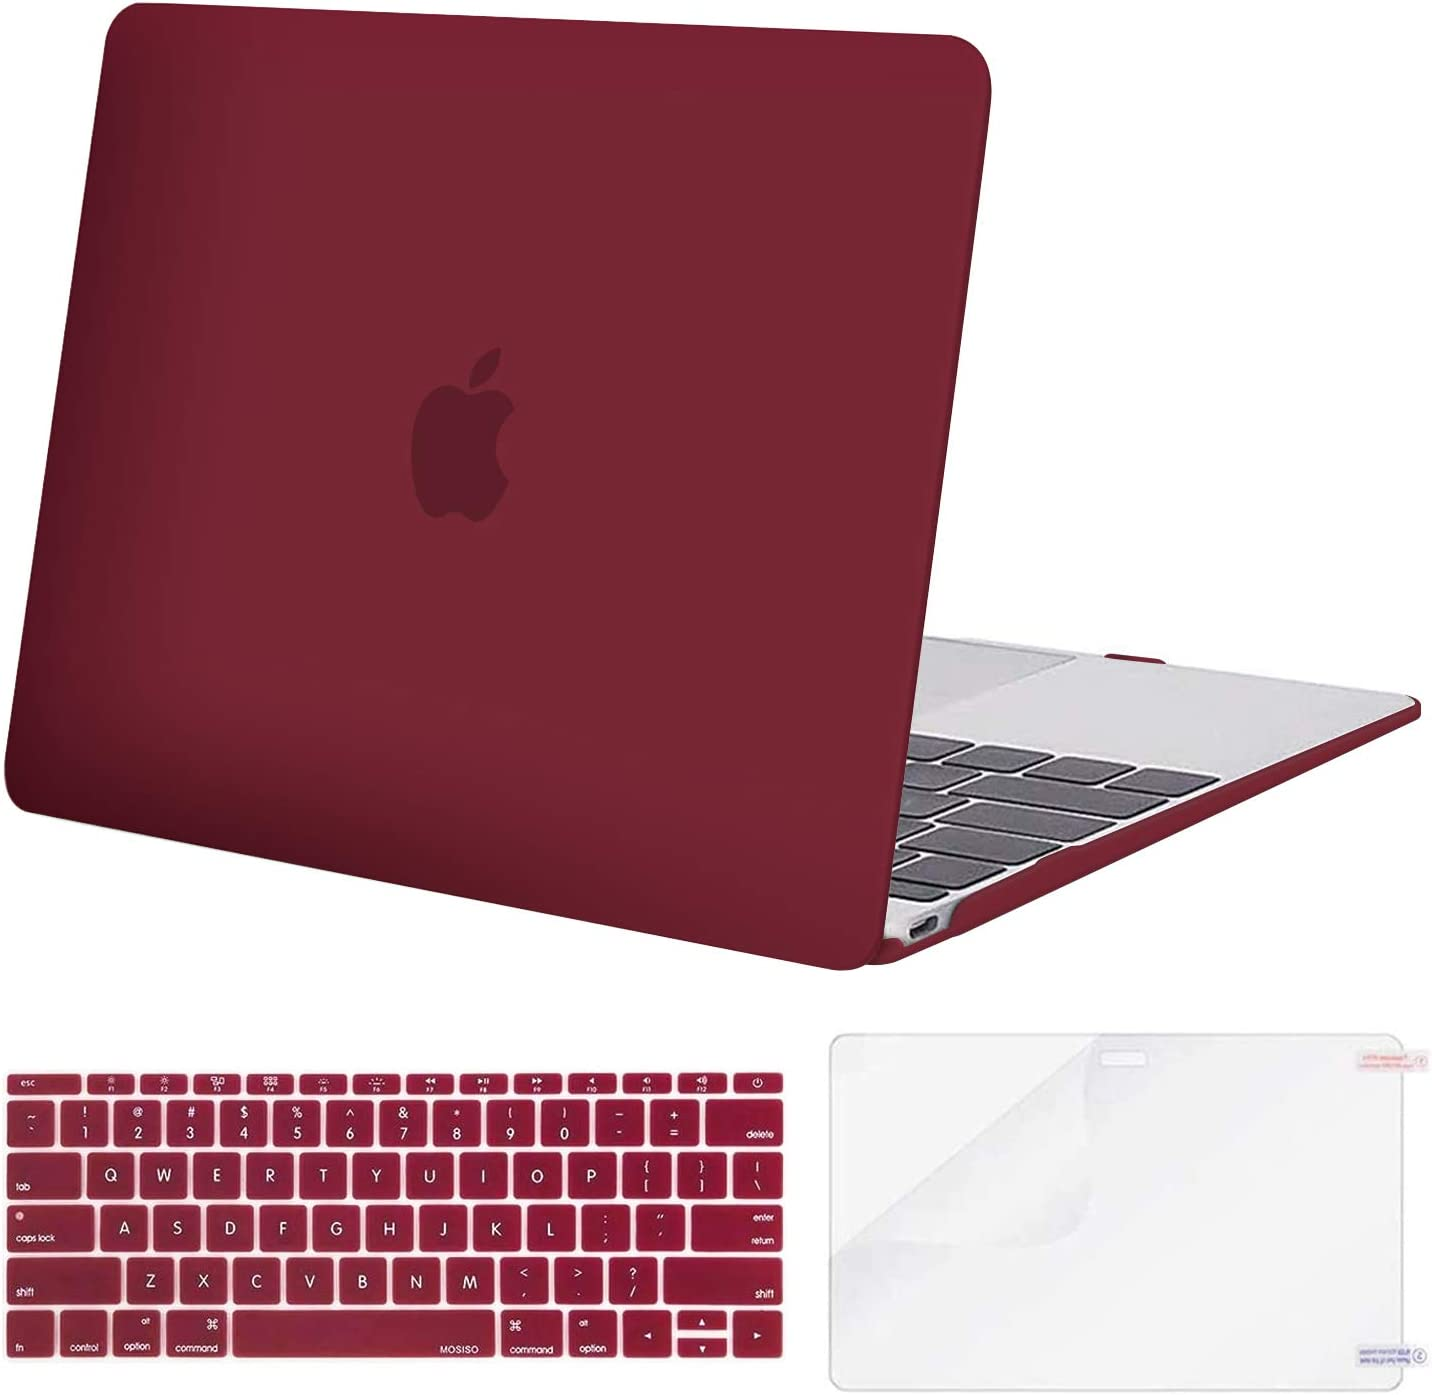 MOSISO Plastic Hard Shell Case & Keyboard Cover Skin & Screen Protector Compatible with MacBook 12 inch with Retina Display (Model A1534, Release 2017 2016 2015), Wine Red